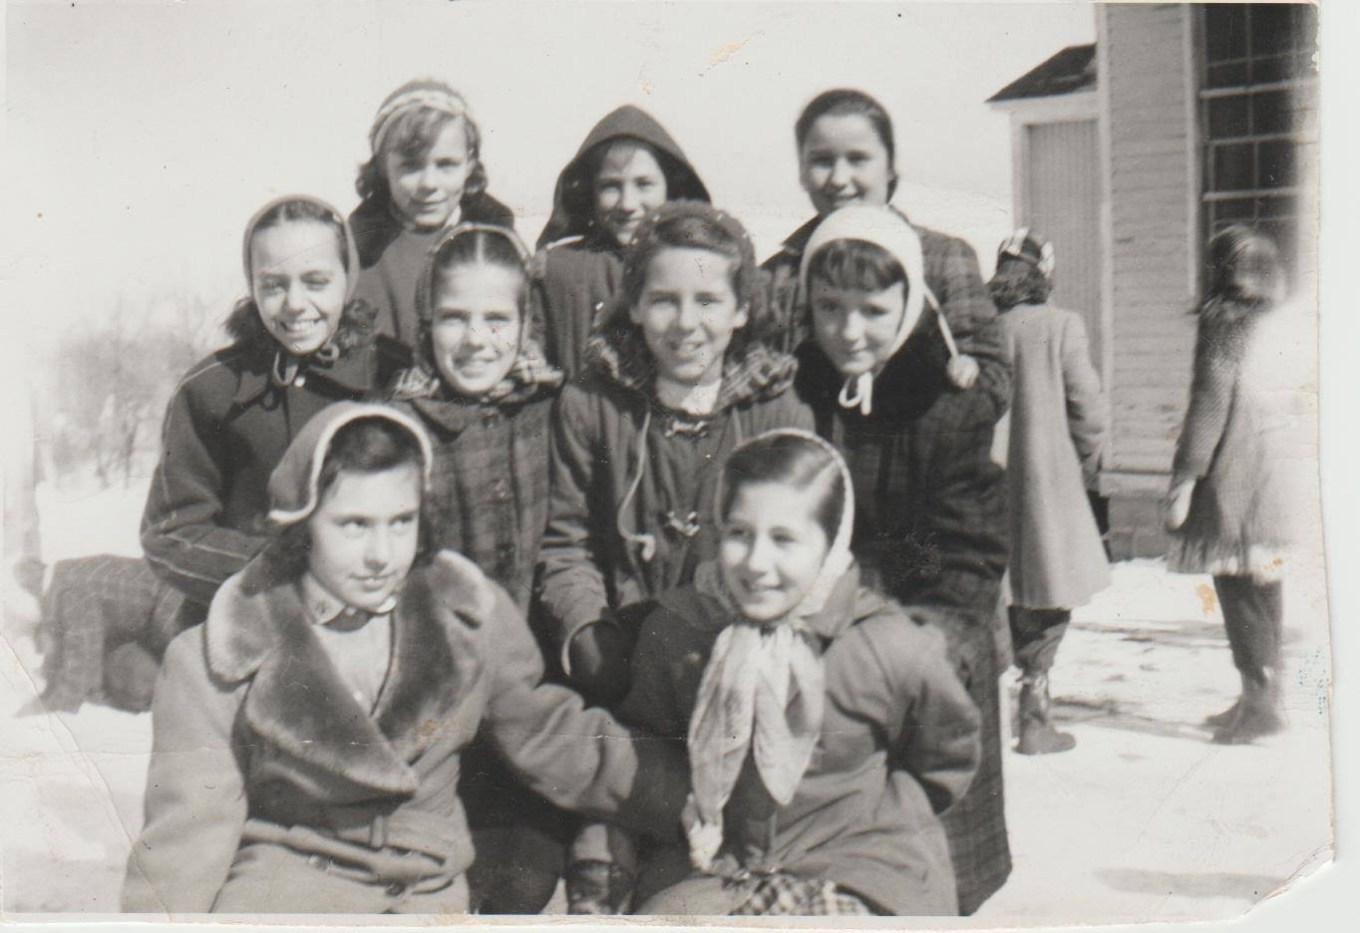 Union School students, mid 1950s, fifth and sixth graders. Photo credit. Dayle Caterino